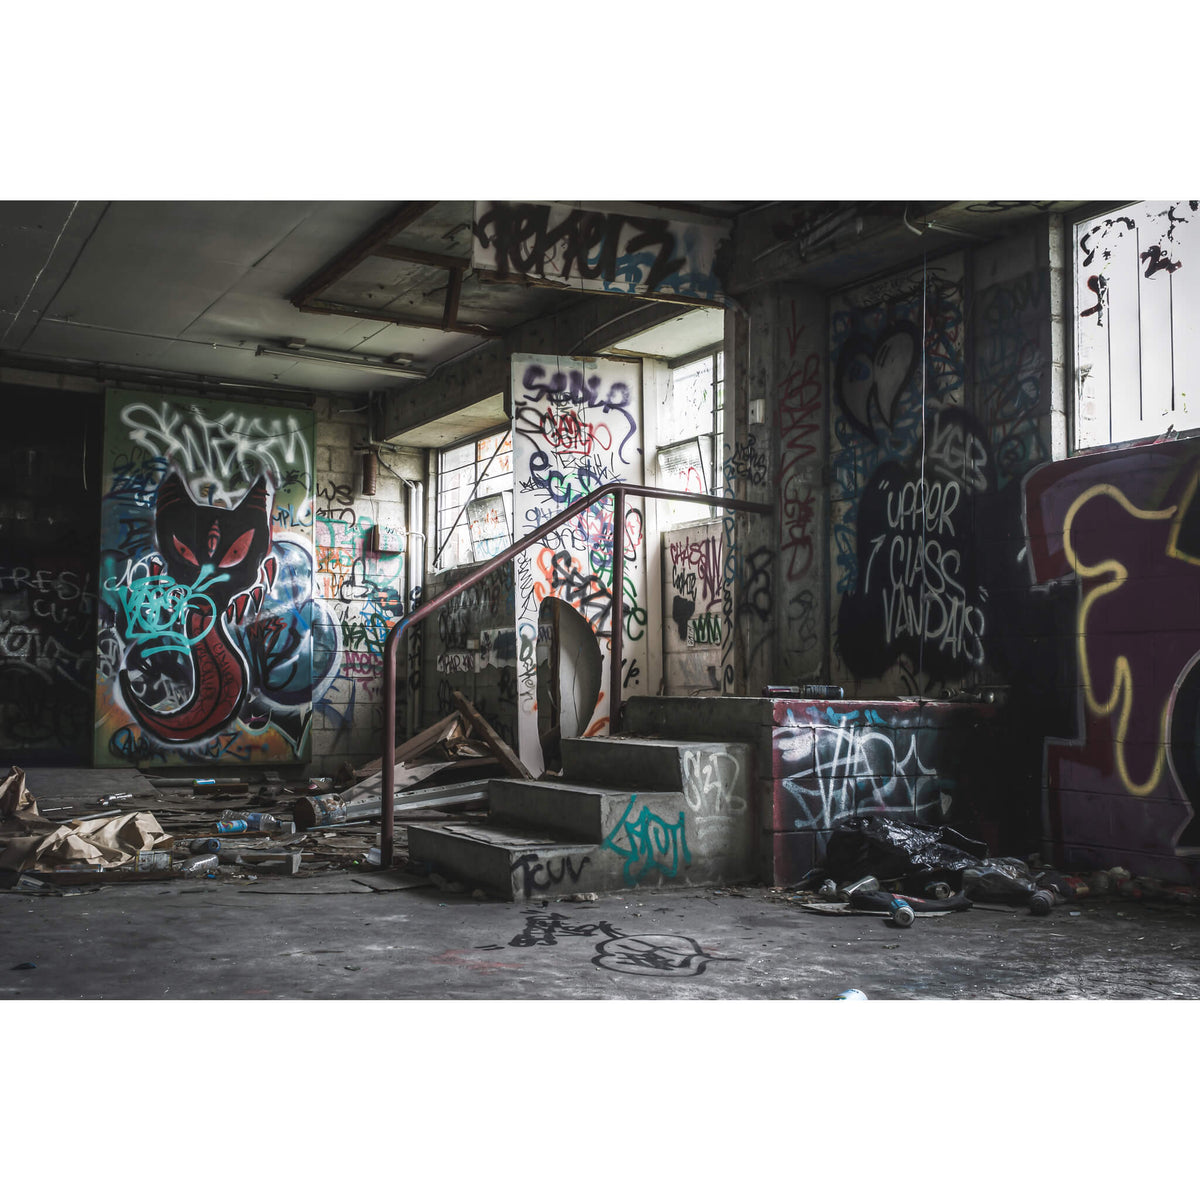 Basement Exit | Abandoned Bakery Fine Art Print - Lost Collective Shop